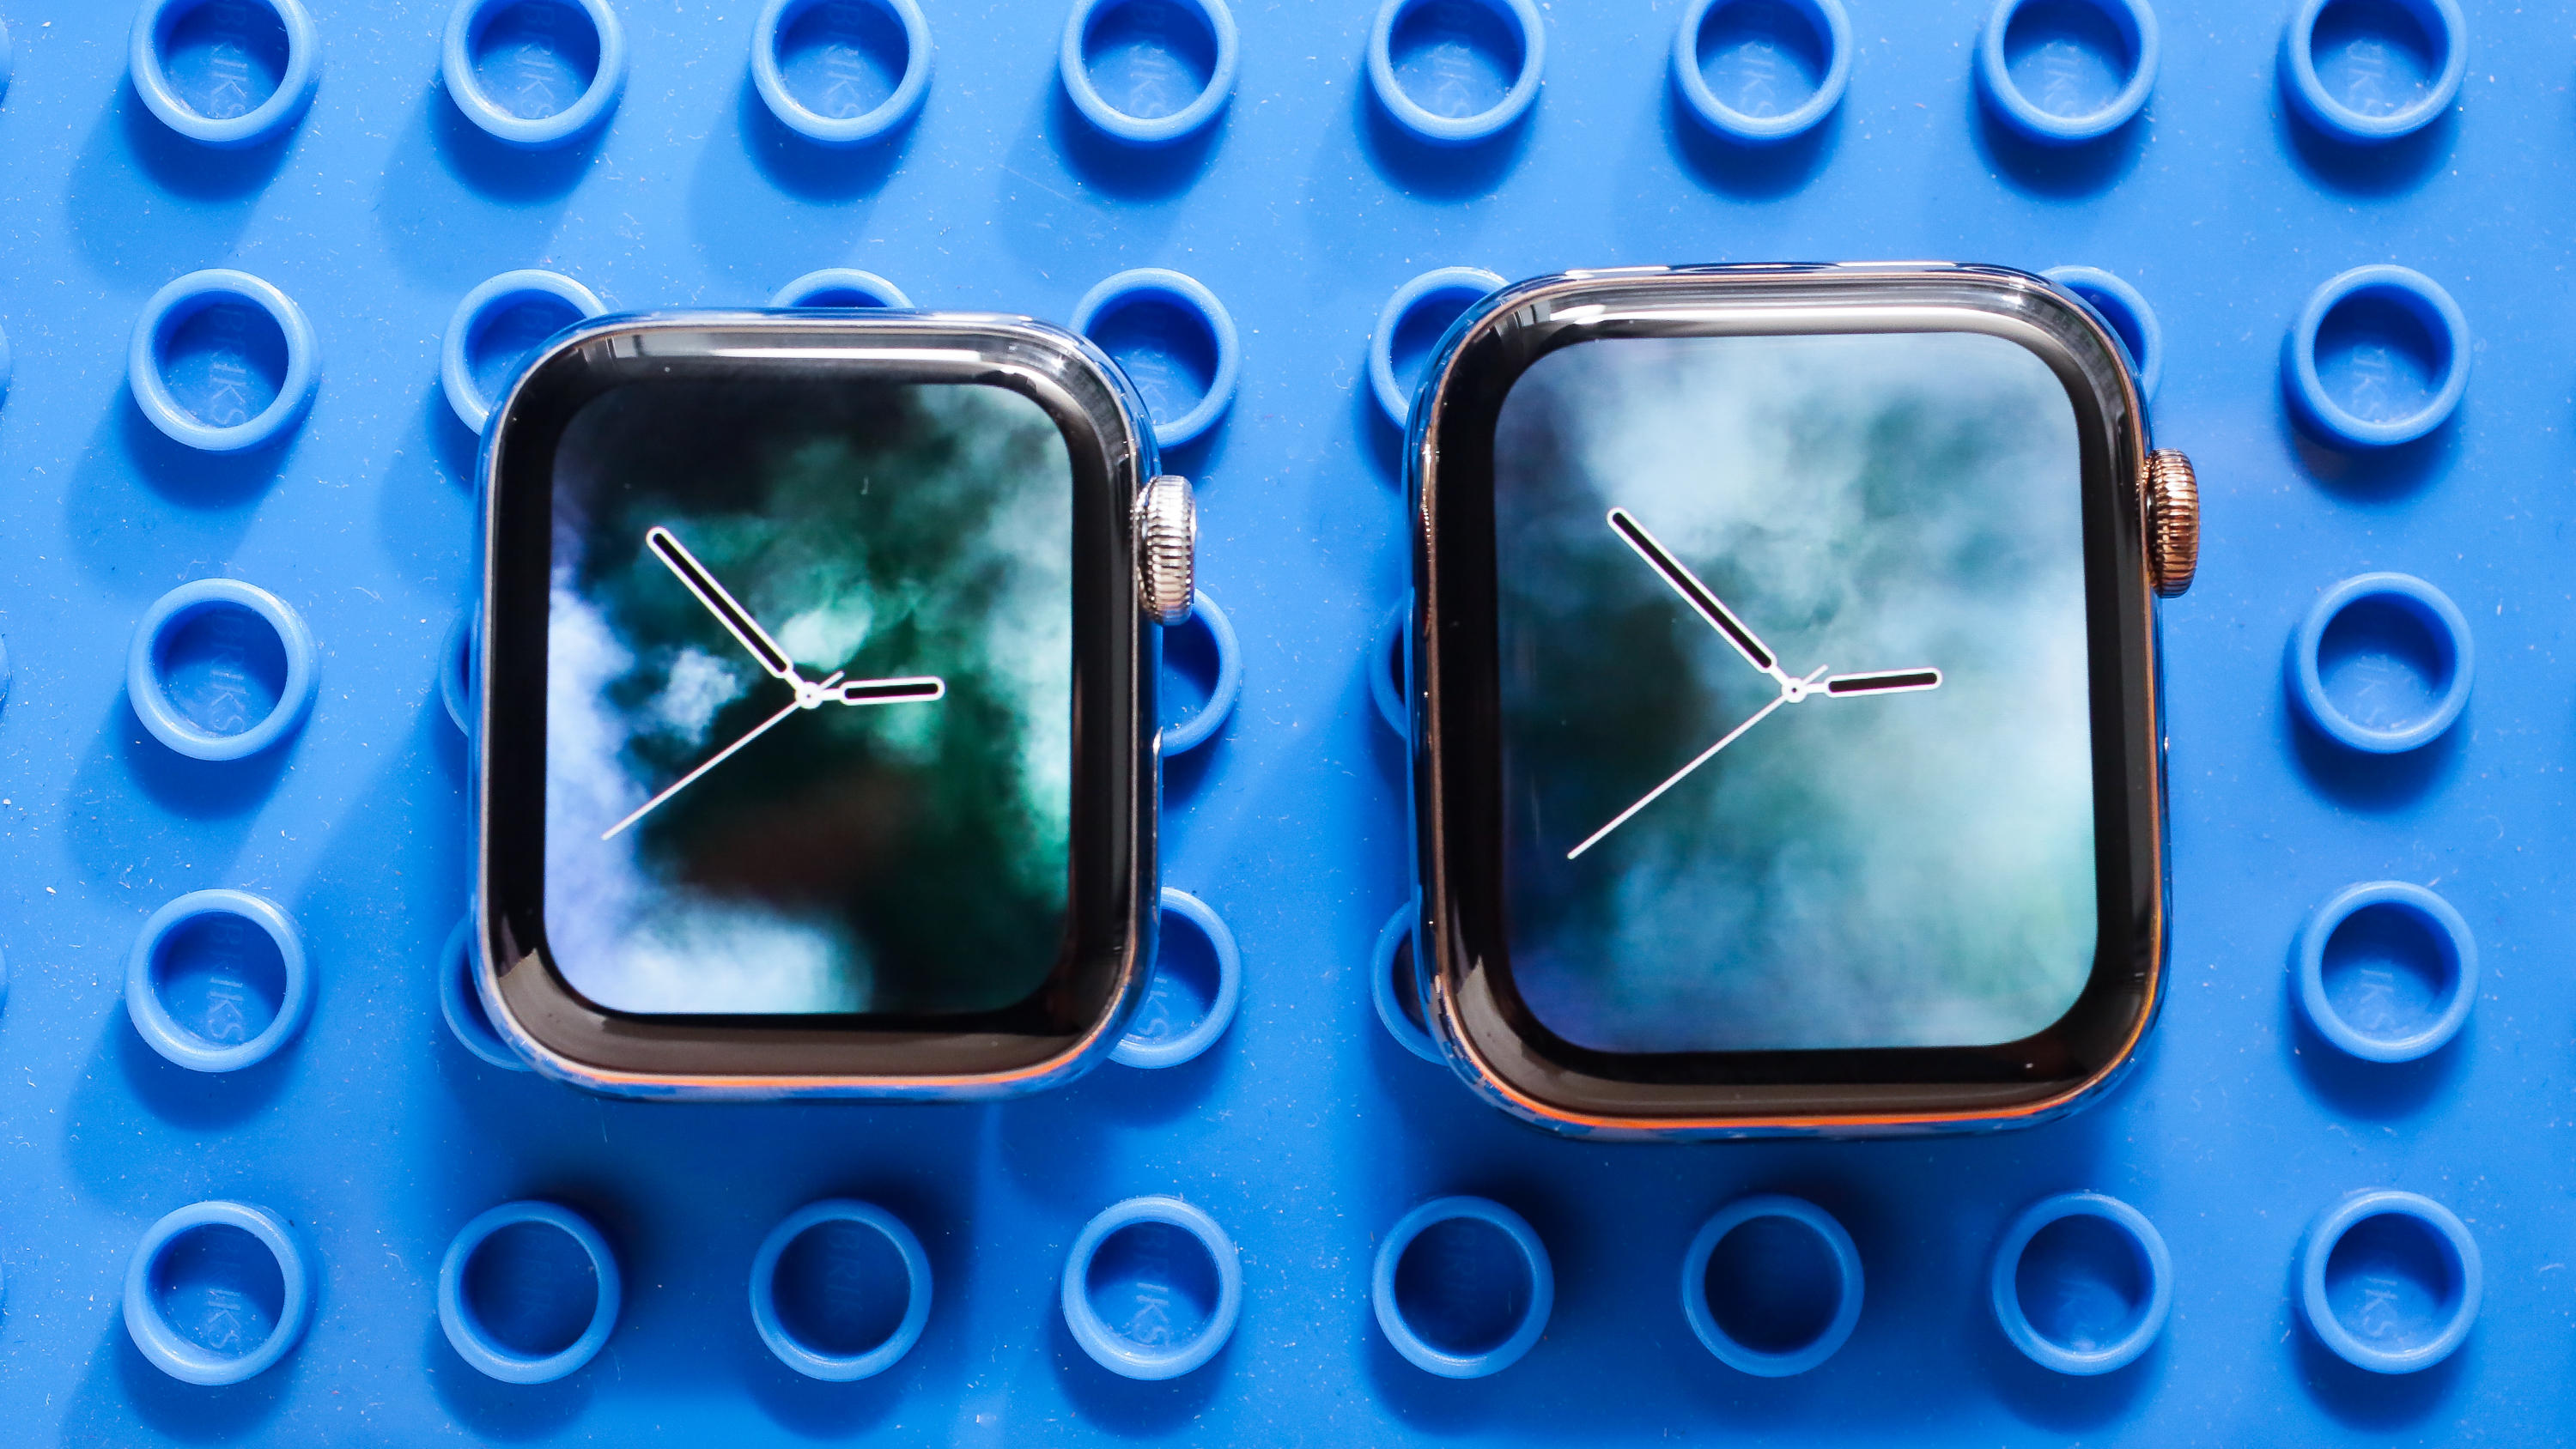 Apple Watch Series 4 compared